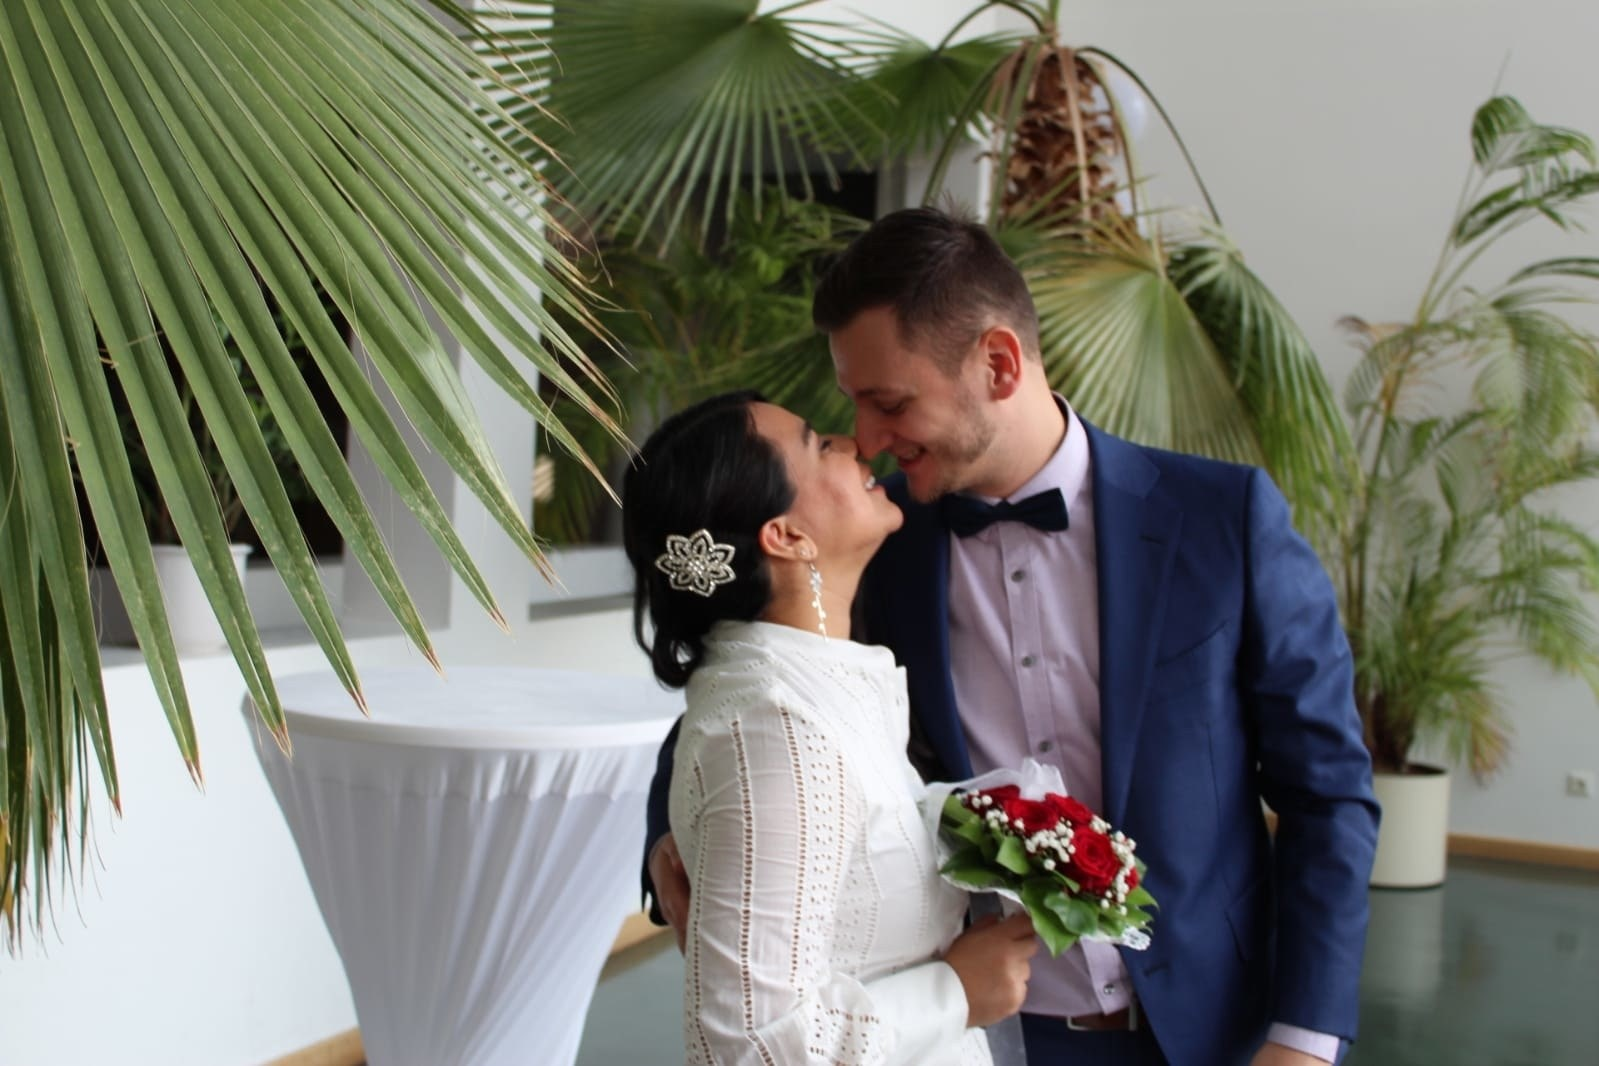 Zuniga and her husband at their civil wedding in Berlin.